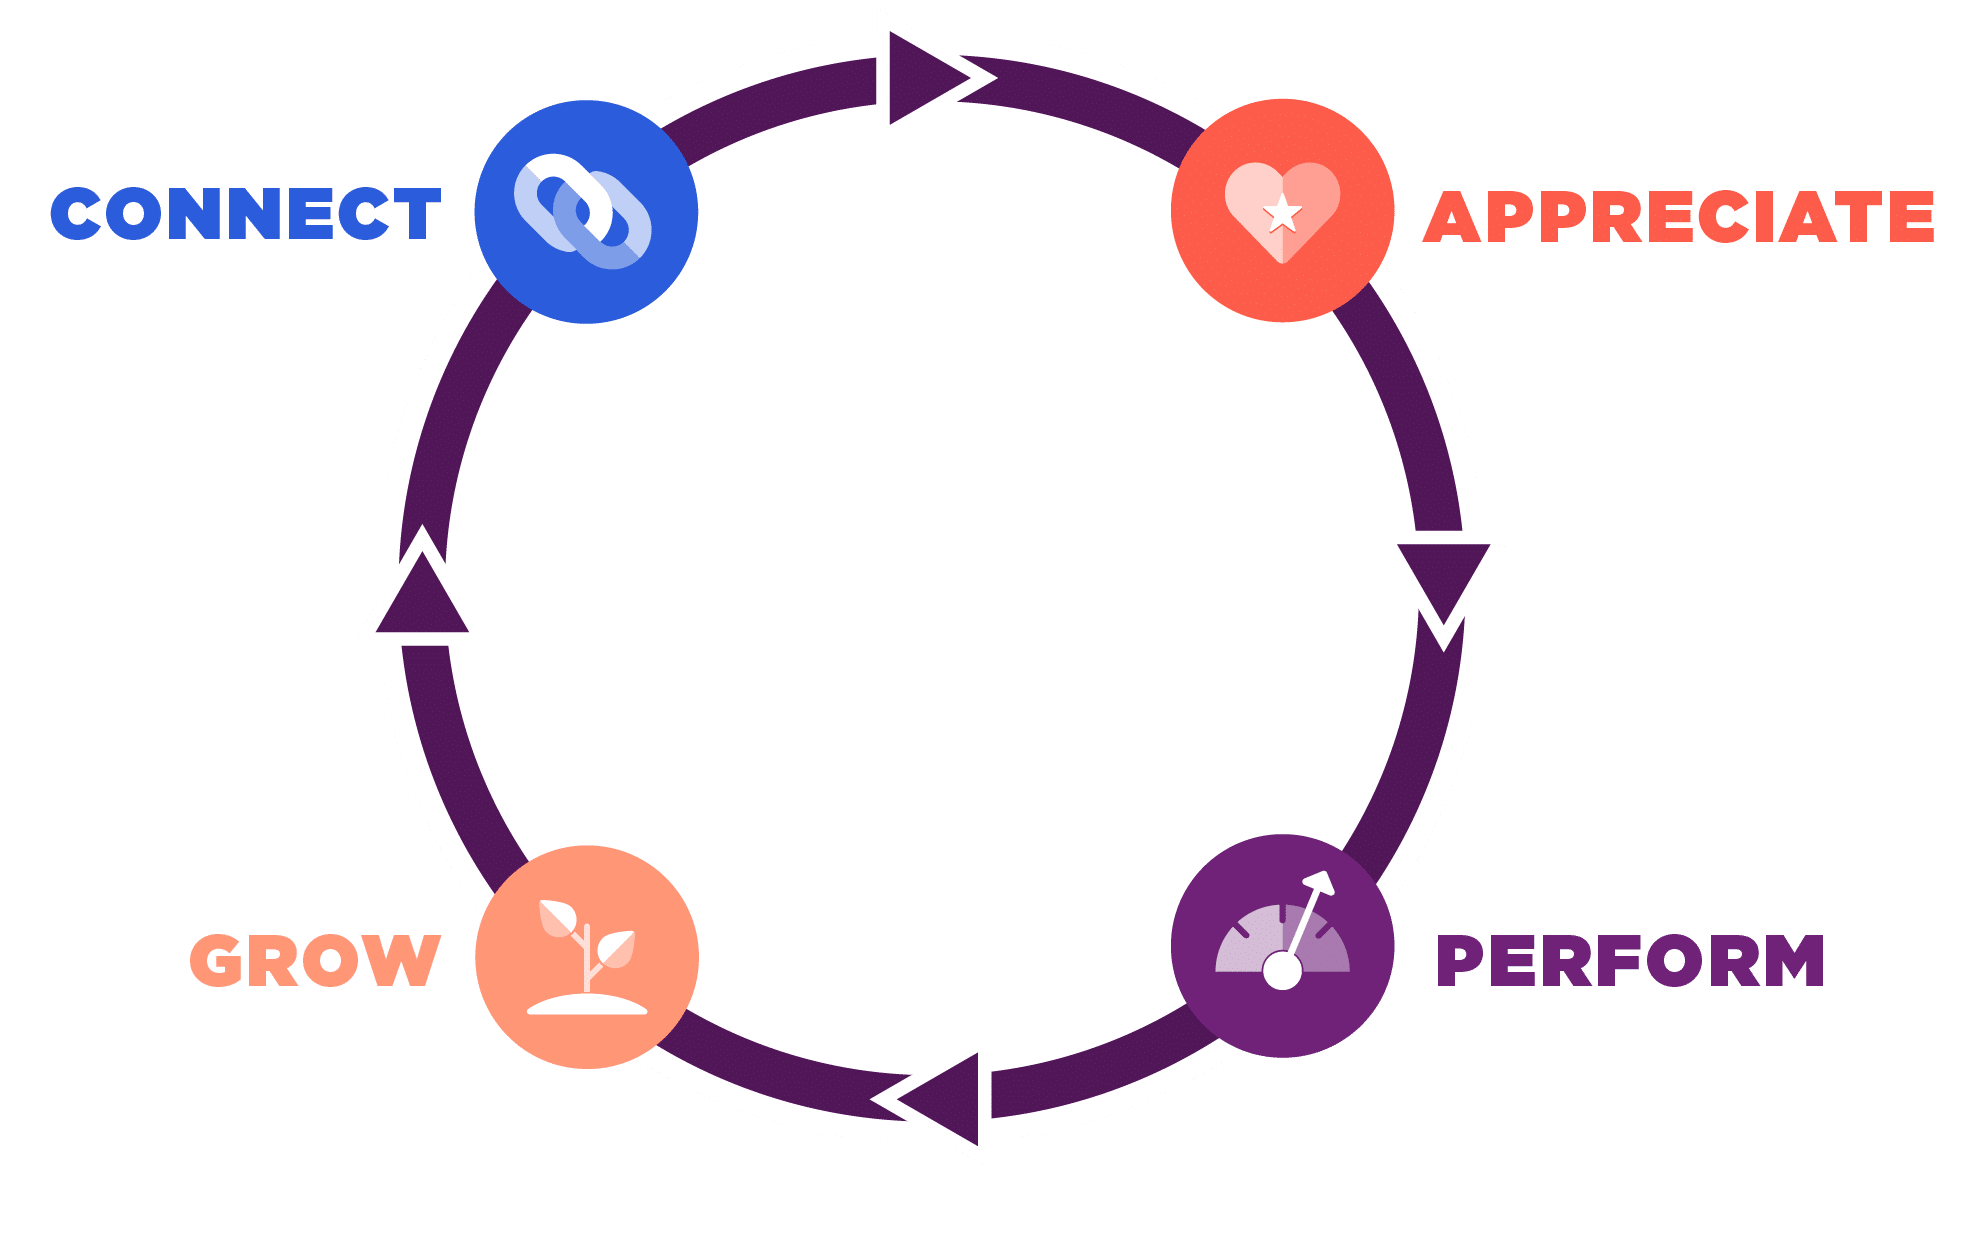 A cycle graphic with four icons and the words Connect, Appreciate, Grow, and Perform